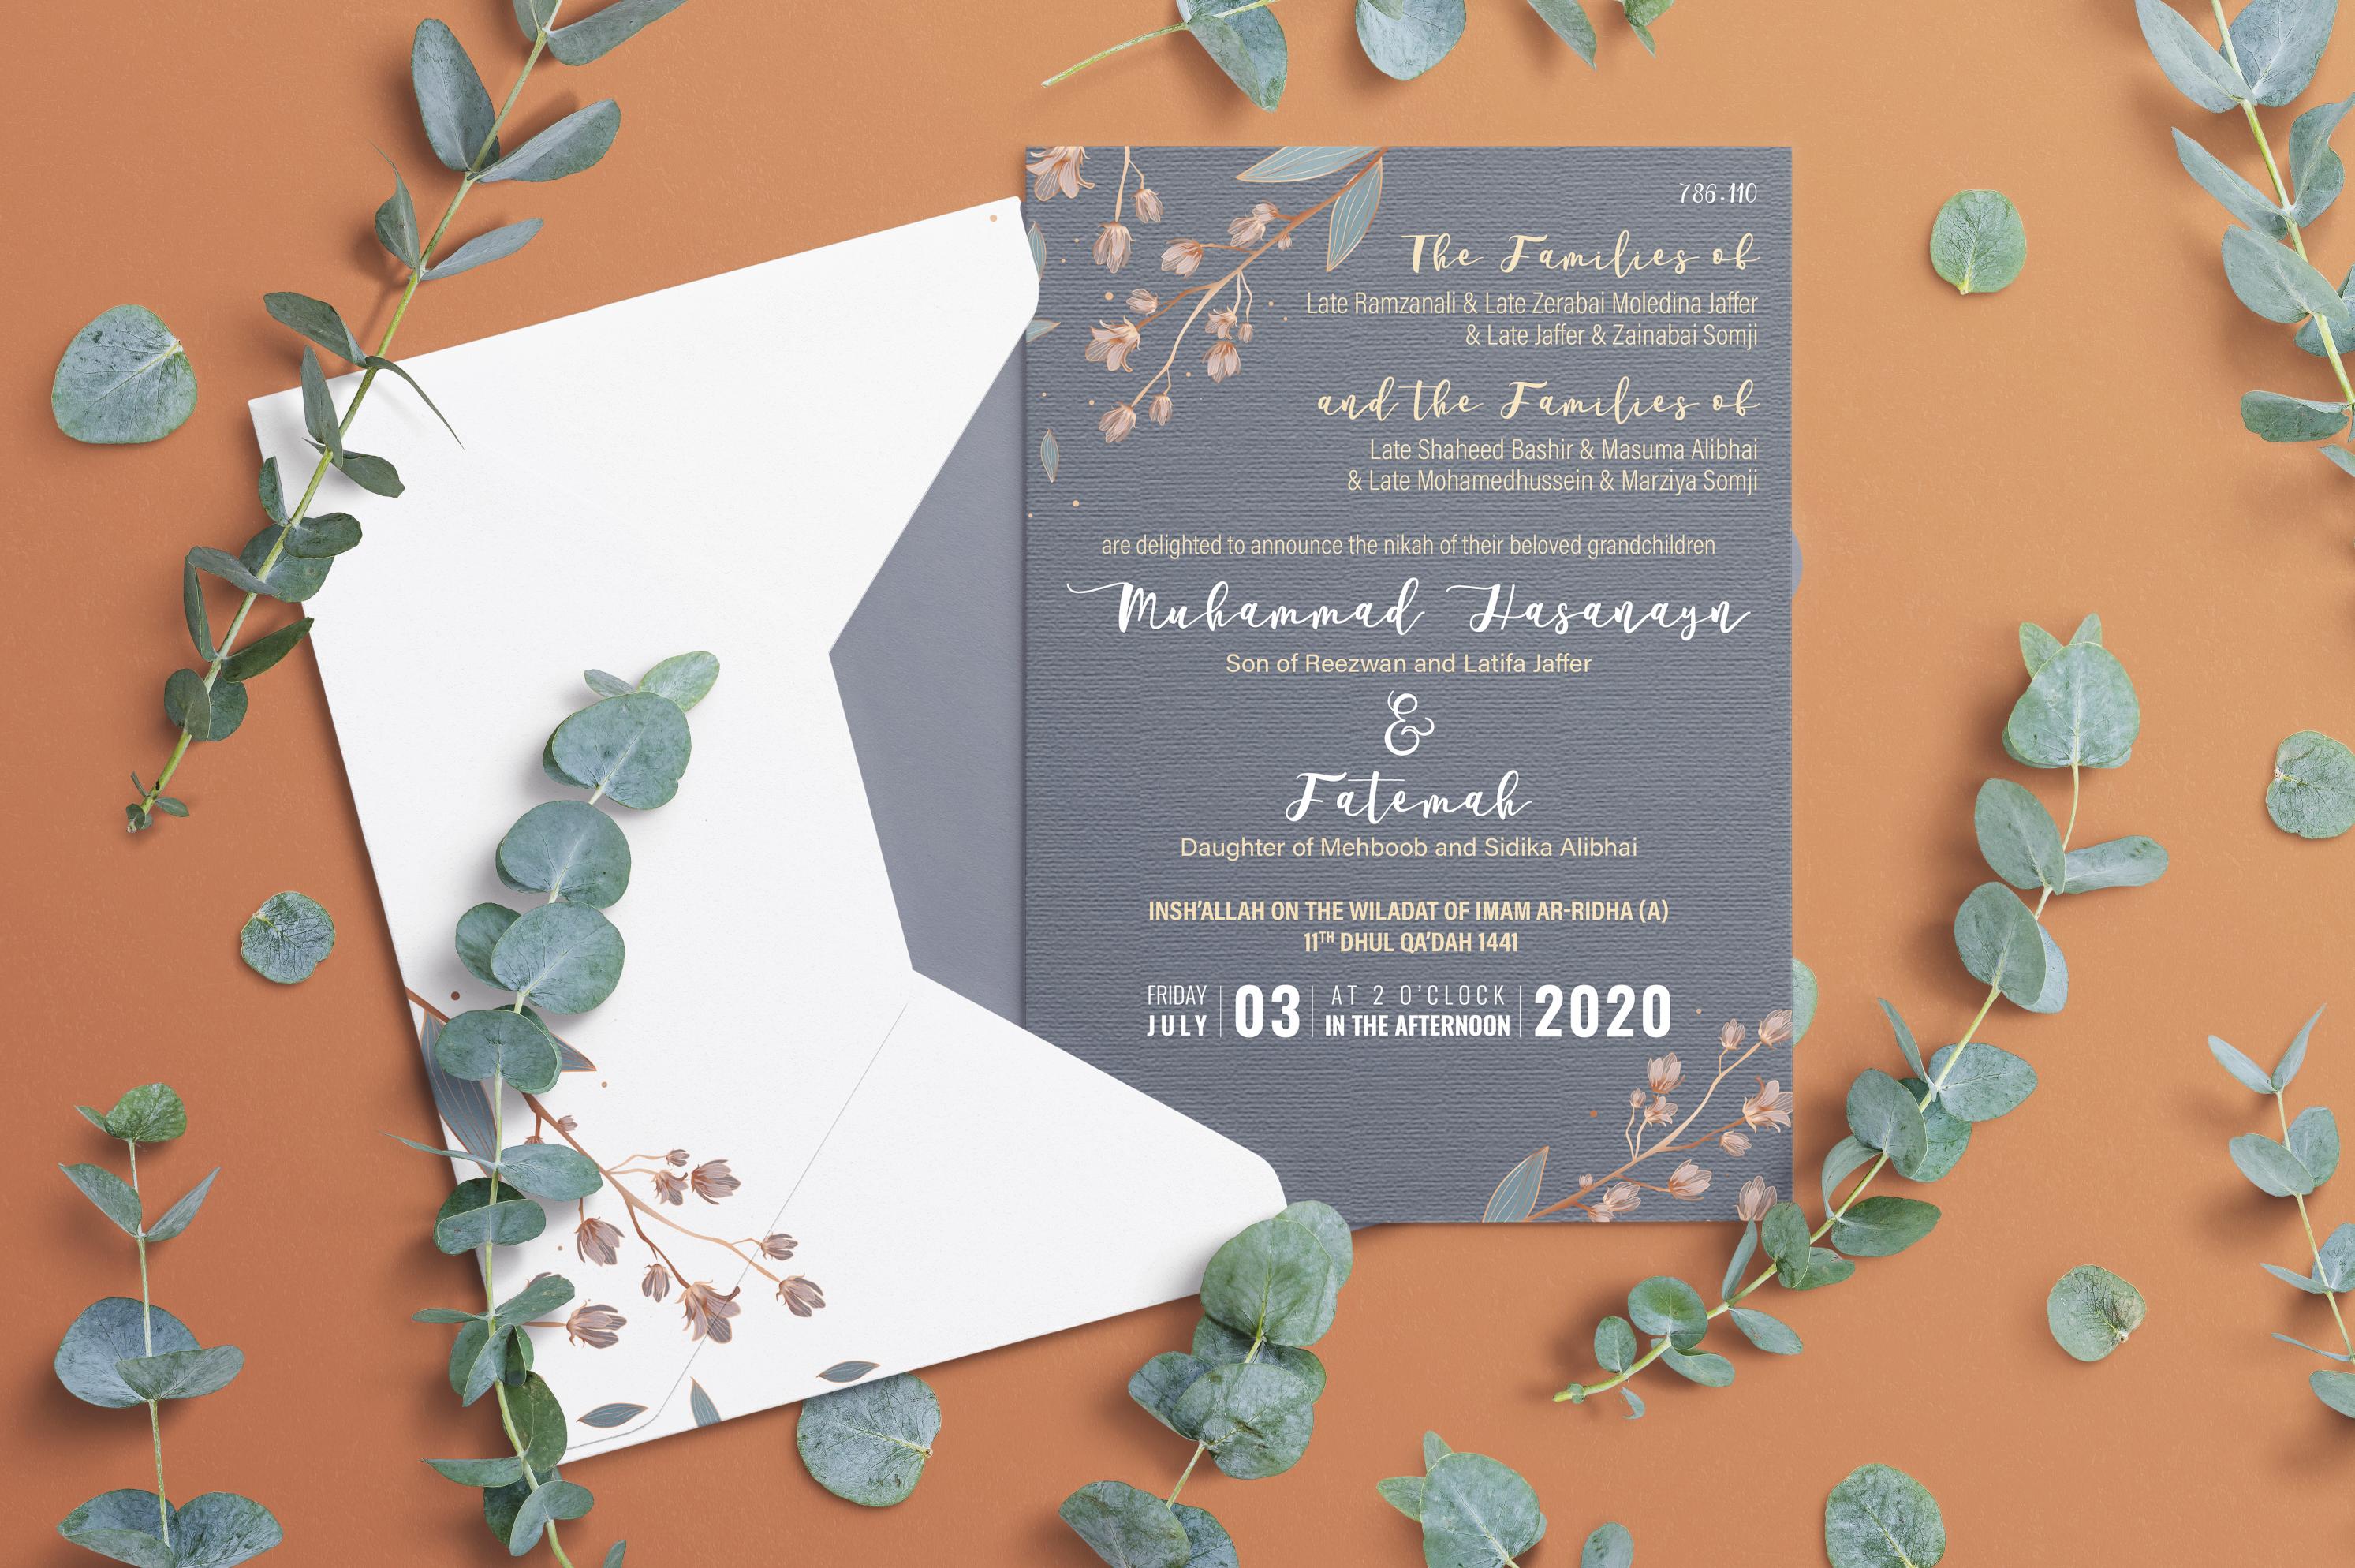 Muhammad Hasanyn & Fatemah – Wedding Invitation